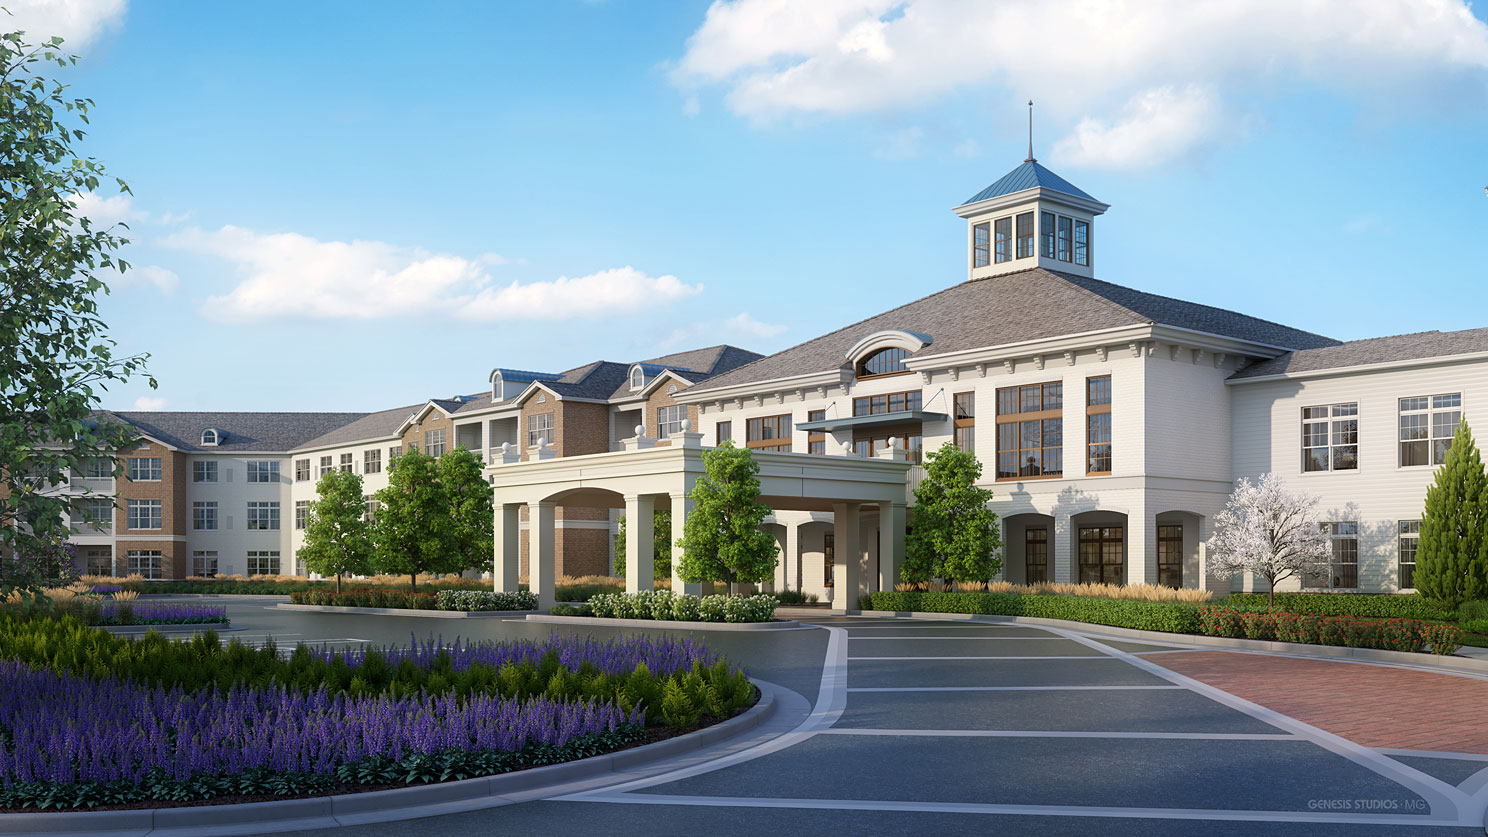 717133 Digital Photorealistic Architectural Renderings of Snellville Front Entrance for Senior Lifestyle Corporation